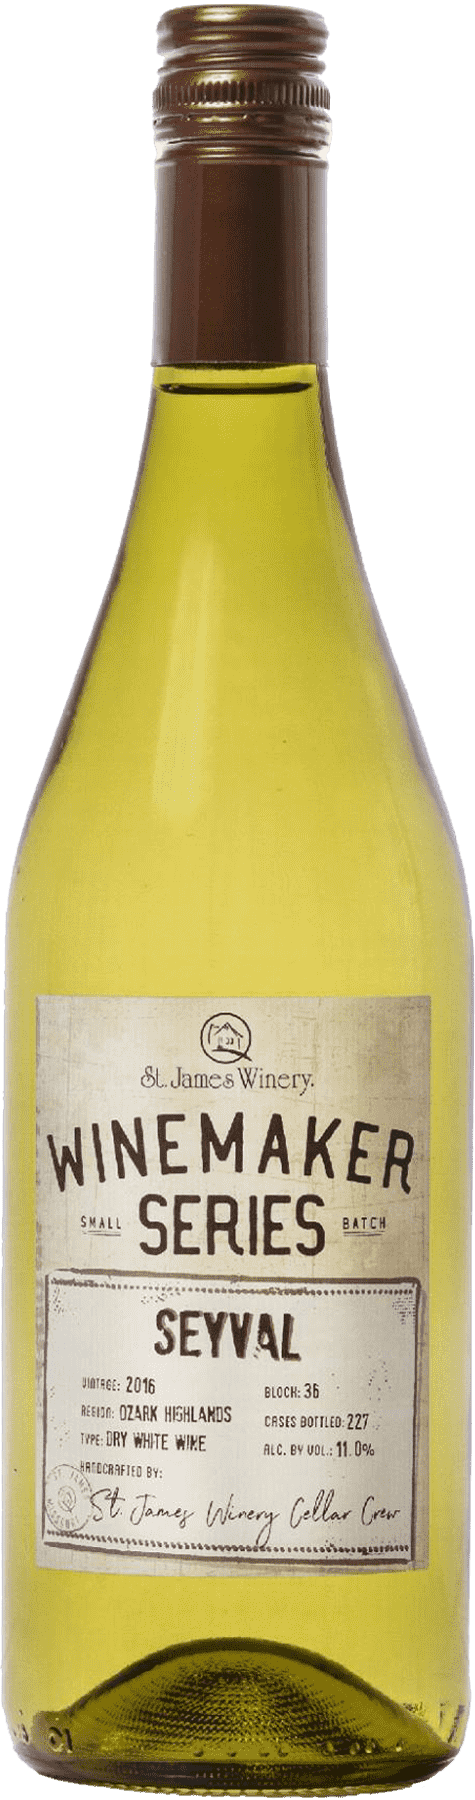 Seyval Winemaker Series Dry White Wine - St. James Winery Missouri